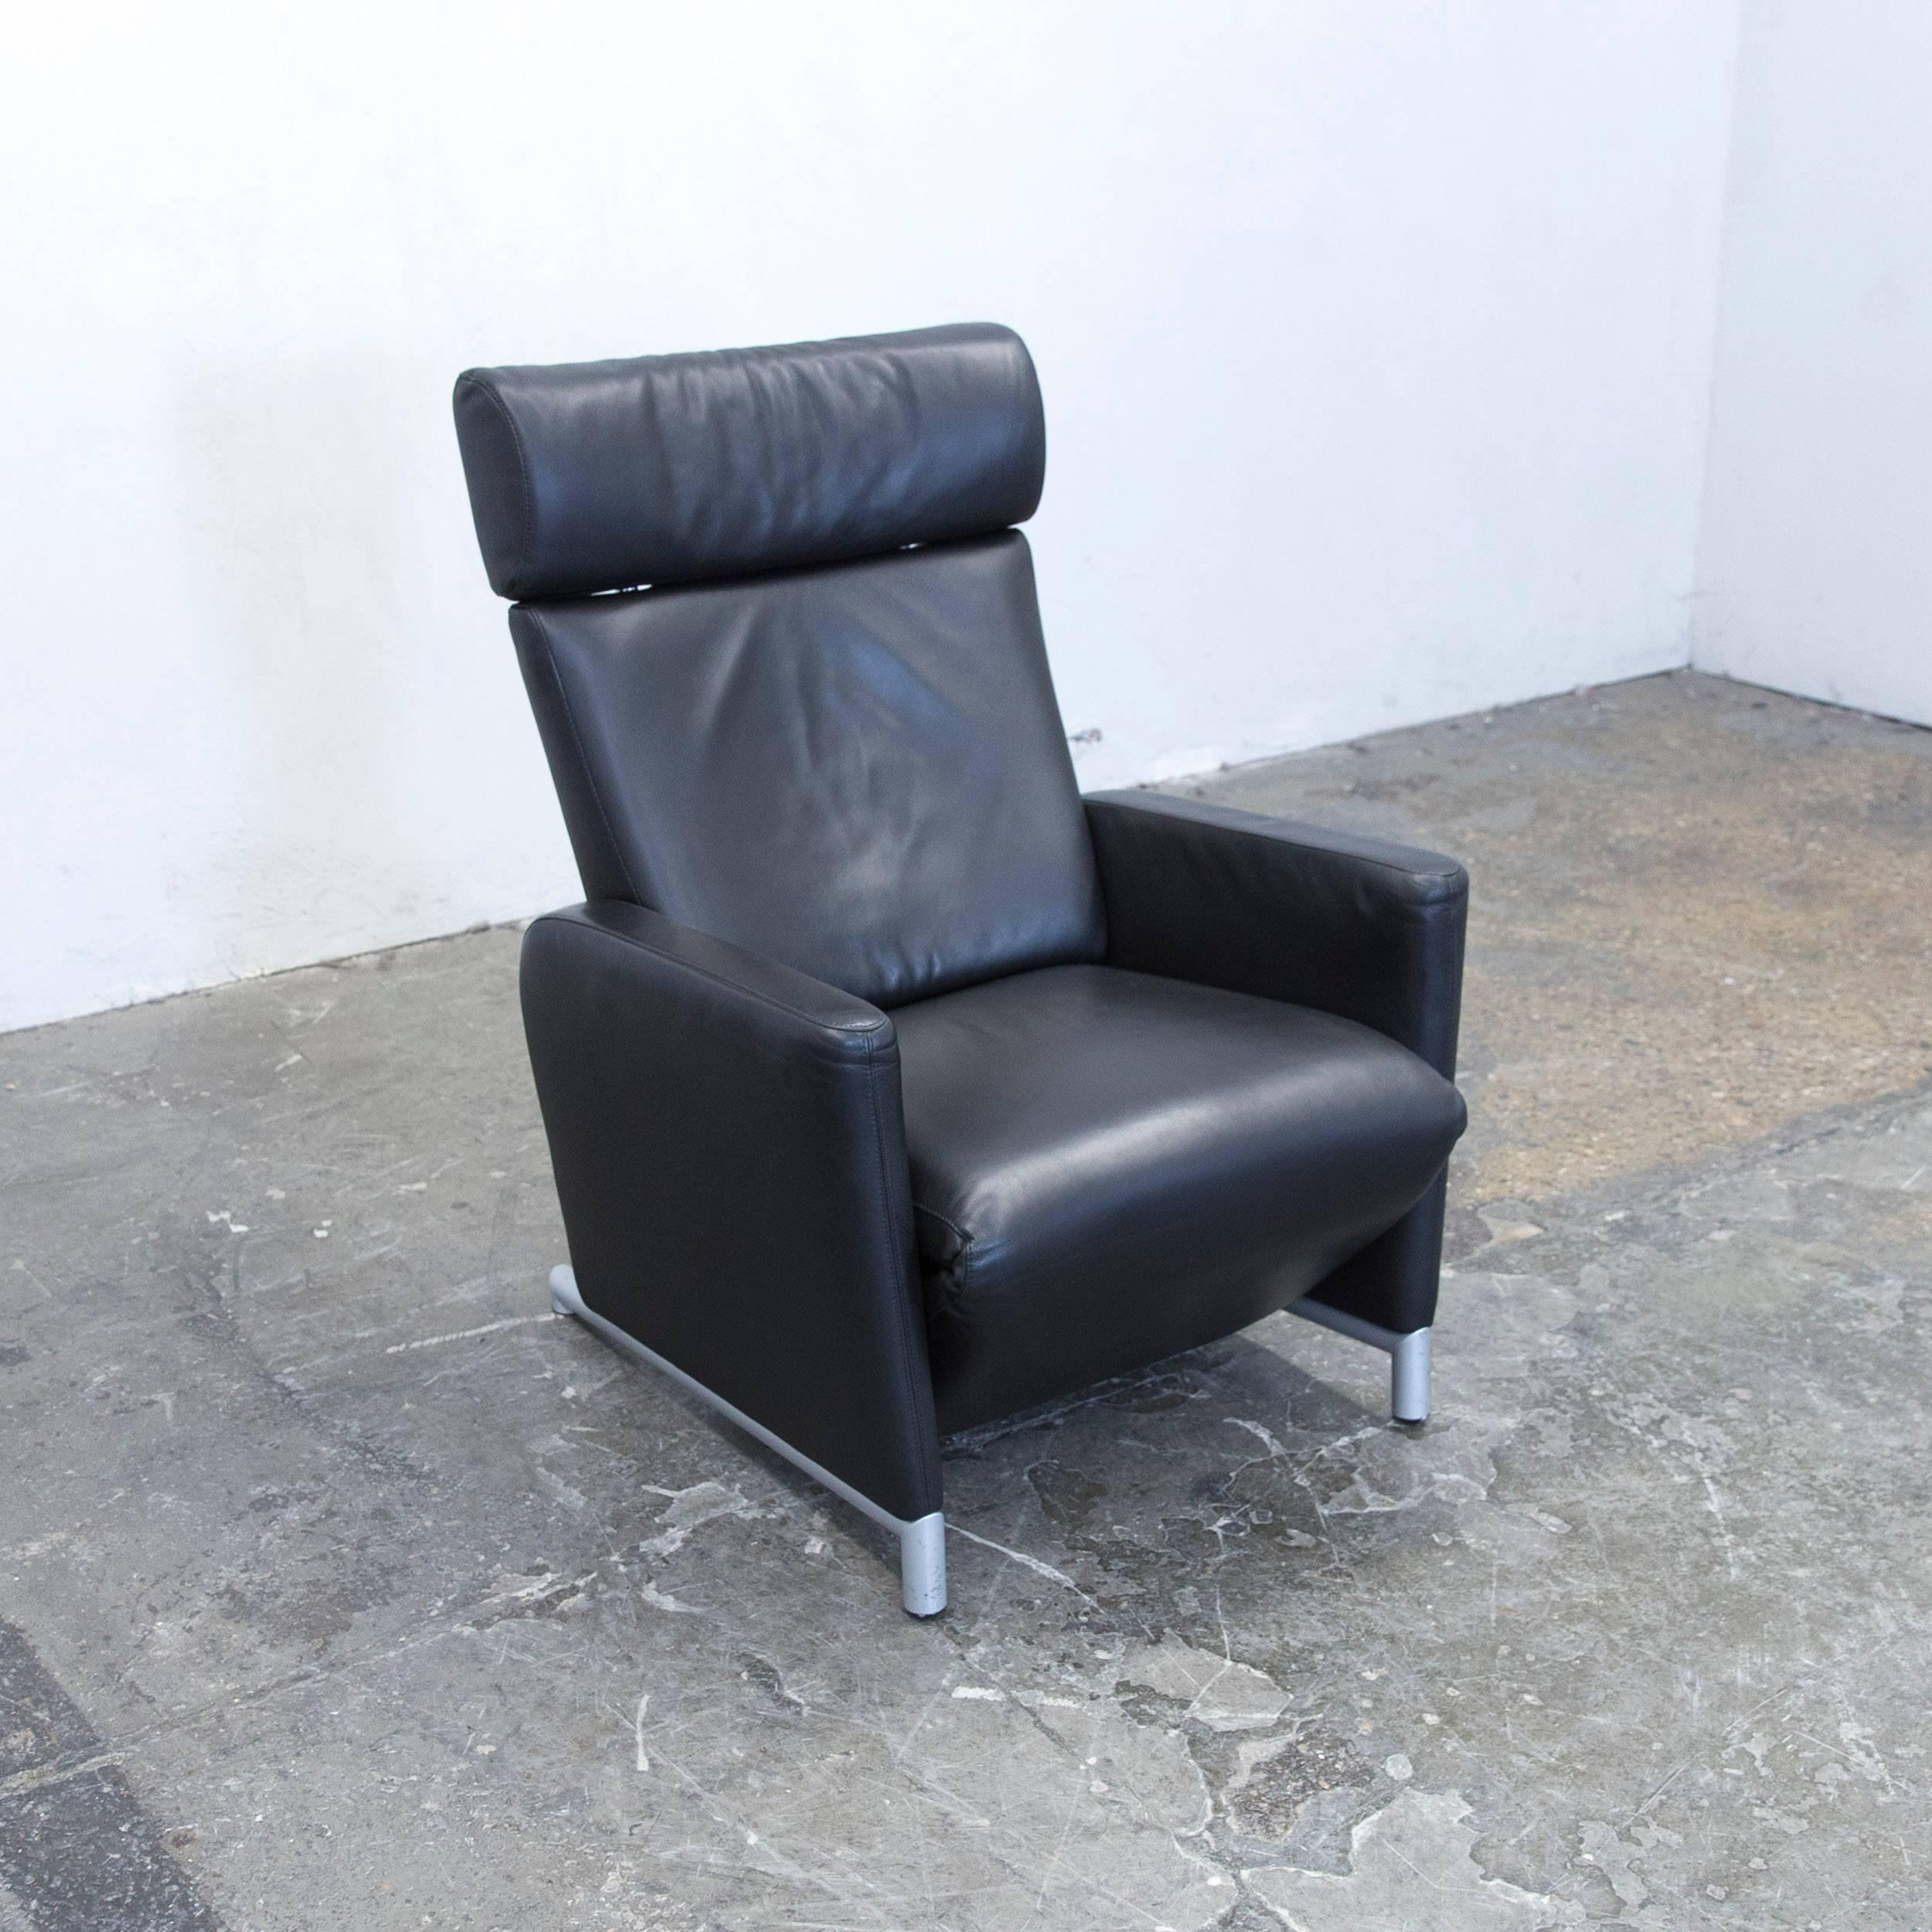 Sessel Cor Cor Bico Designer Armchair Leather Black One Seat Couch Modern Function